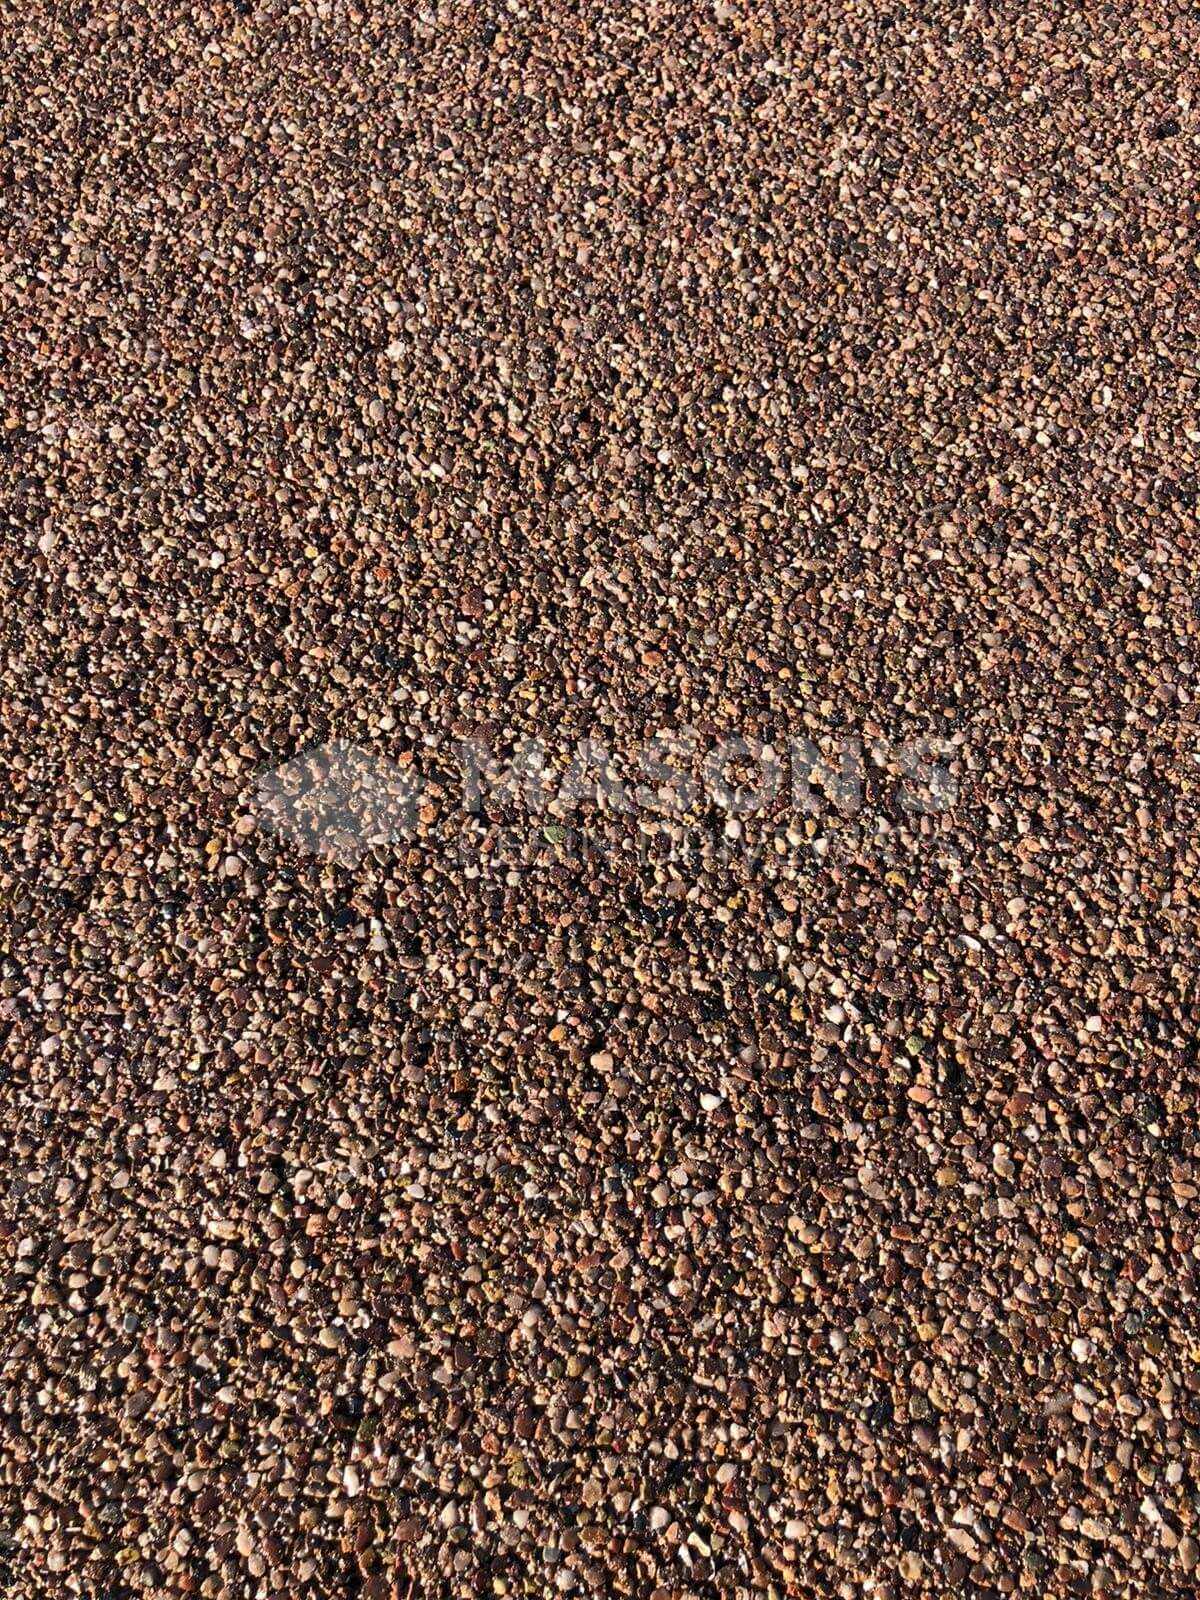 Close up of the Resin in the Driveway of a Preston Residence in Lancashire